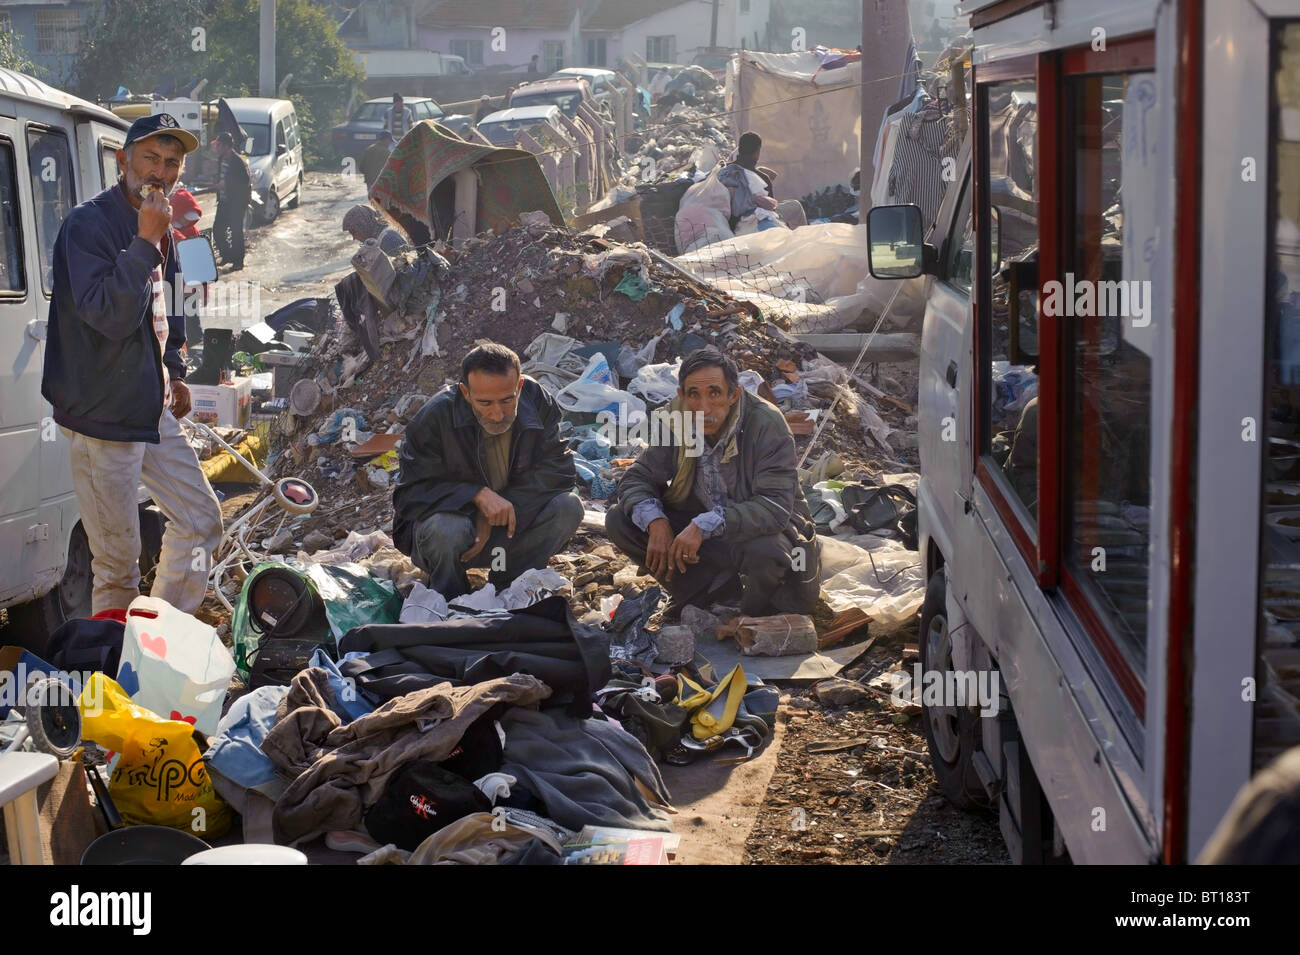 Potential customers peruse the goods at a stall in the Izmir flea market. - Stock Image